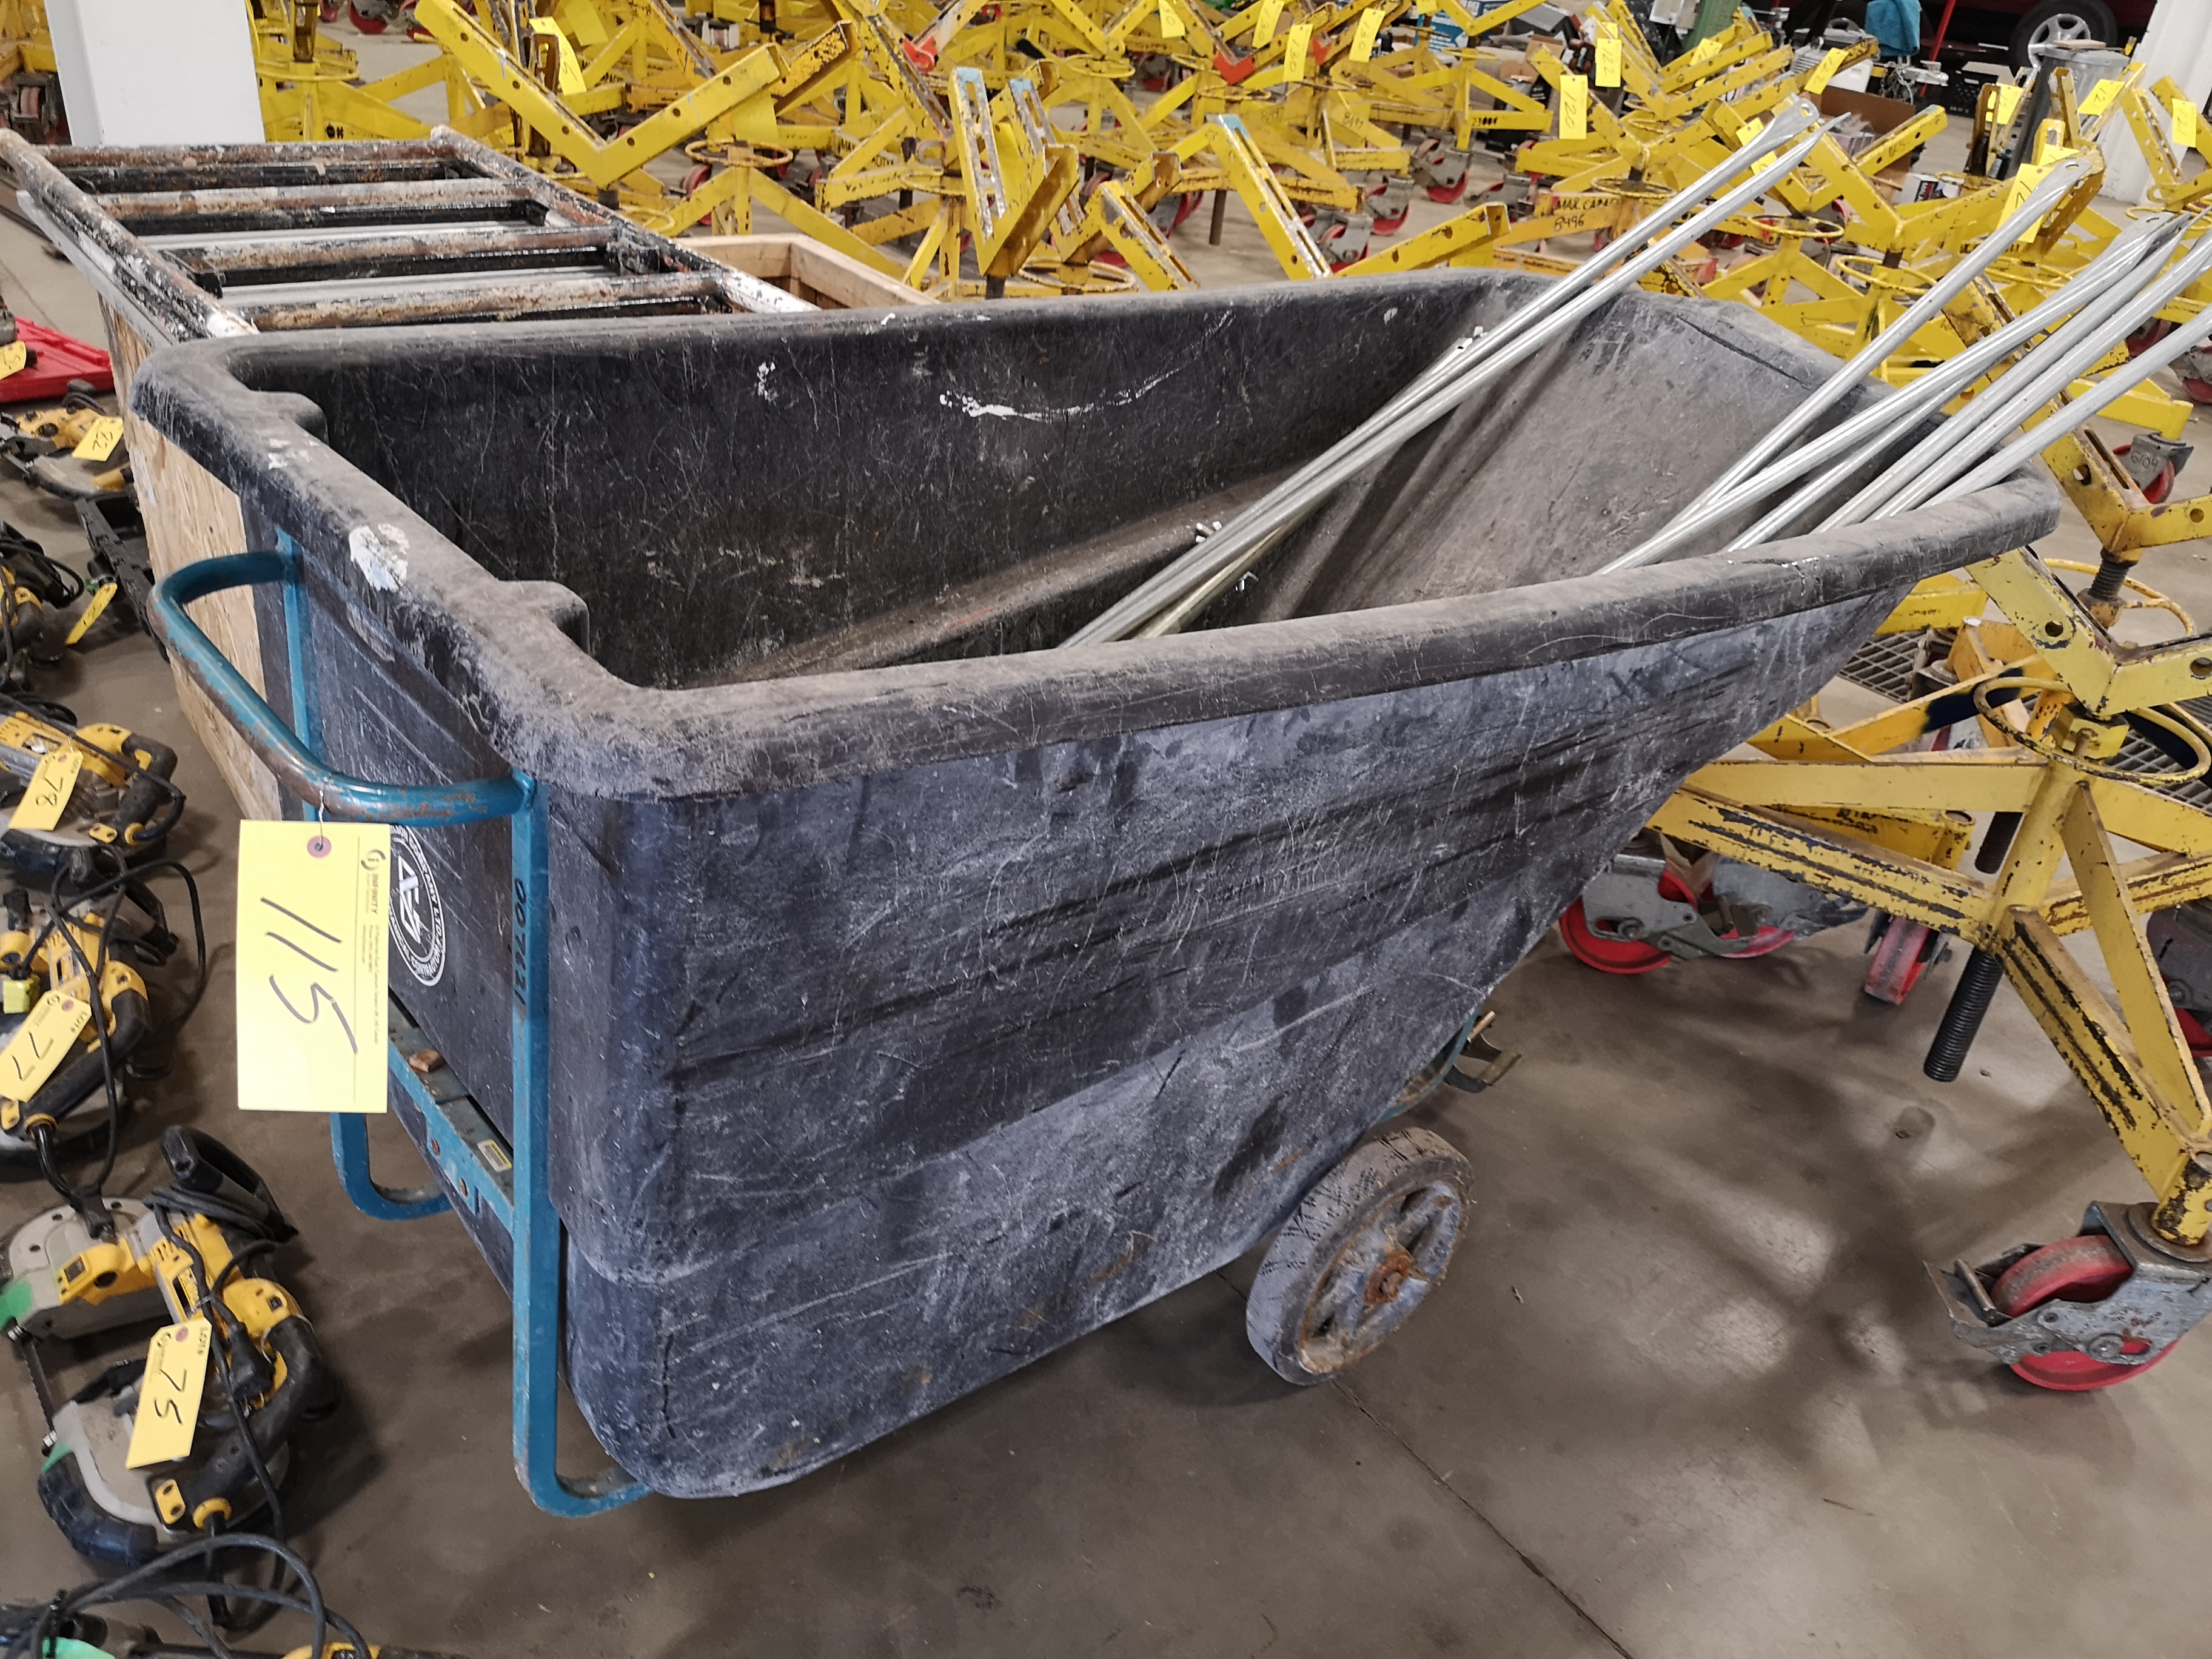 LOT OF SCAFFOLD PARTS AND POLYETHYLENE ROLLING DUMPING BIN (LOCATED AT 1135 STELLAR DRIVE, - Image 2 of 3